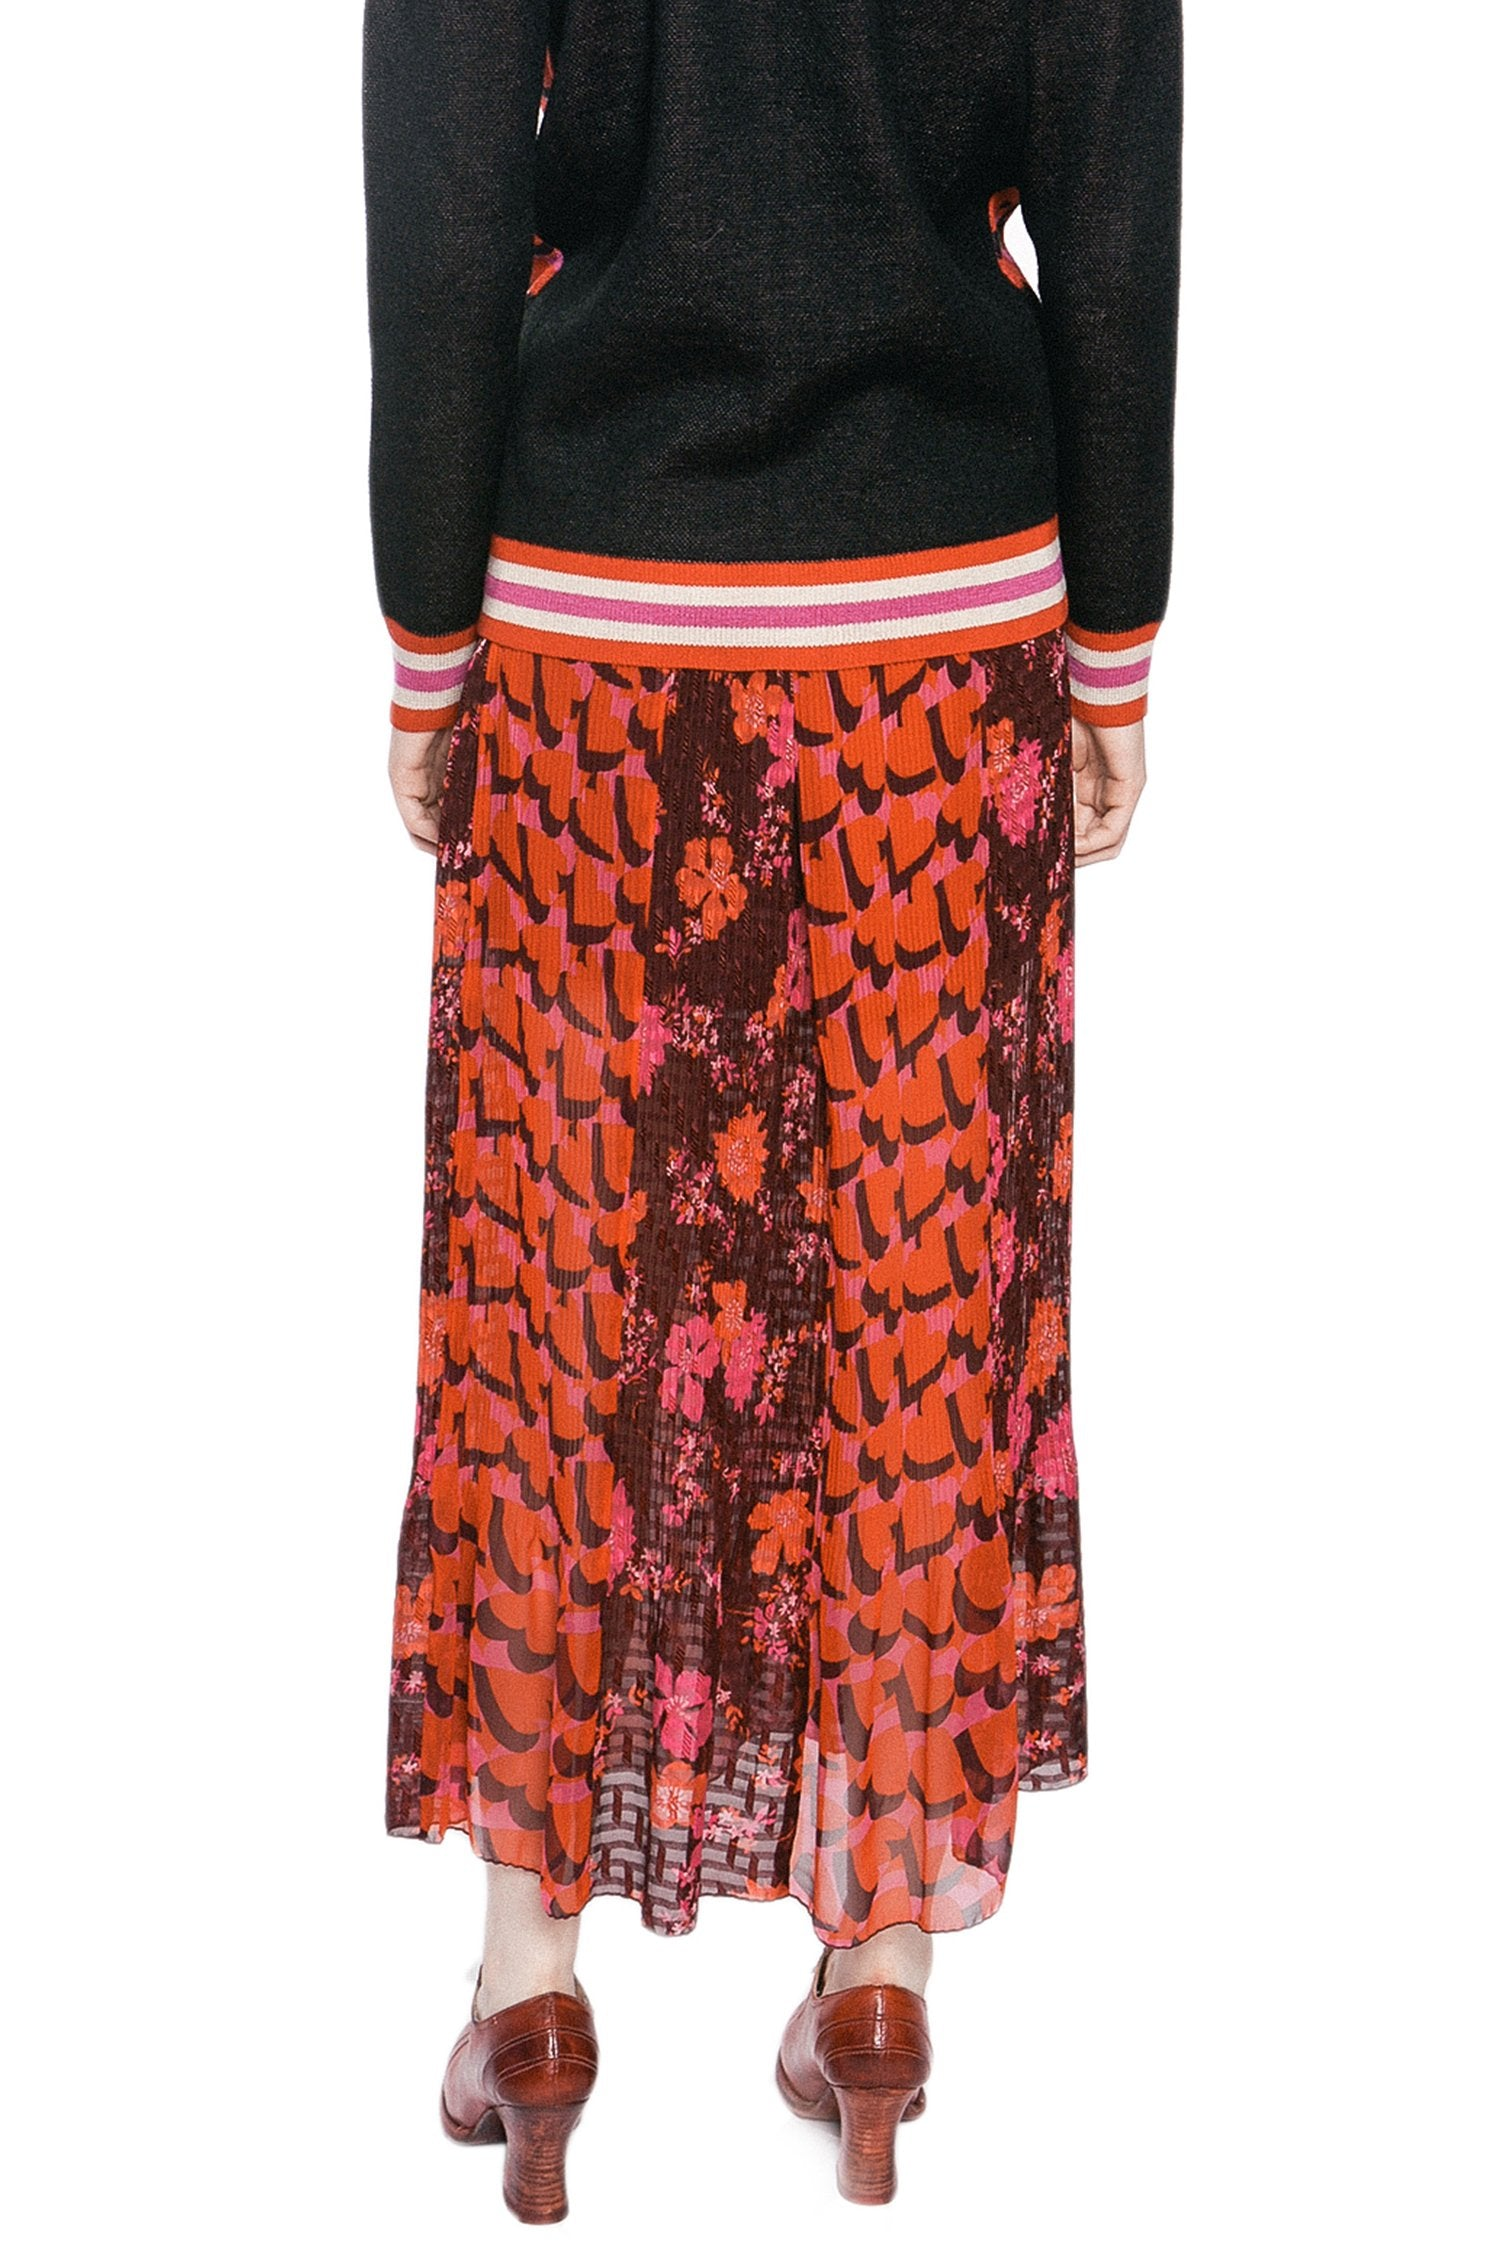 Scattered Flowers Clipped Jacquard Skirt - Anna Sui